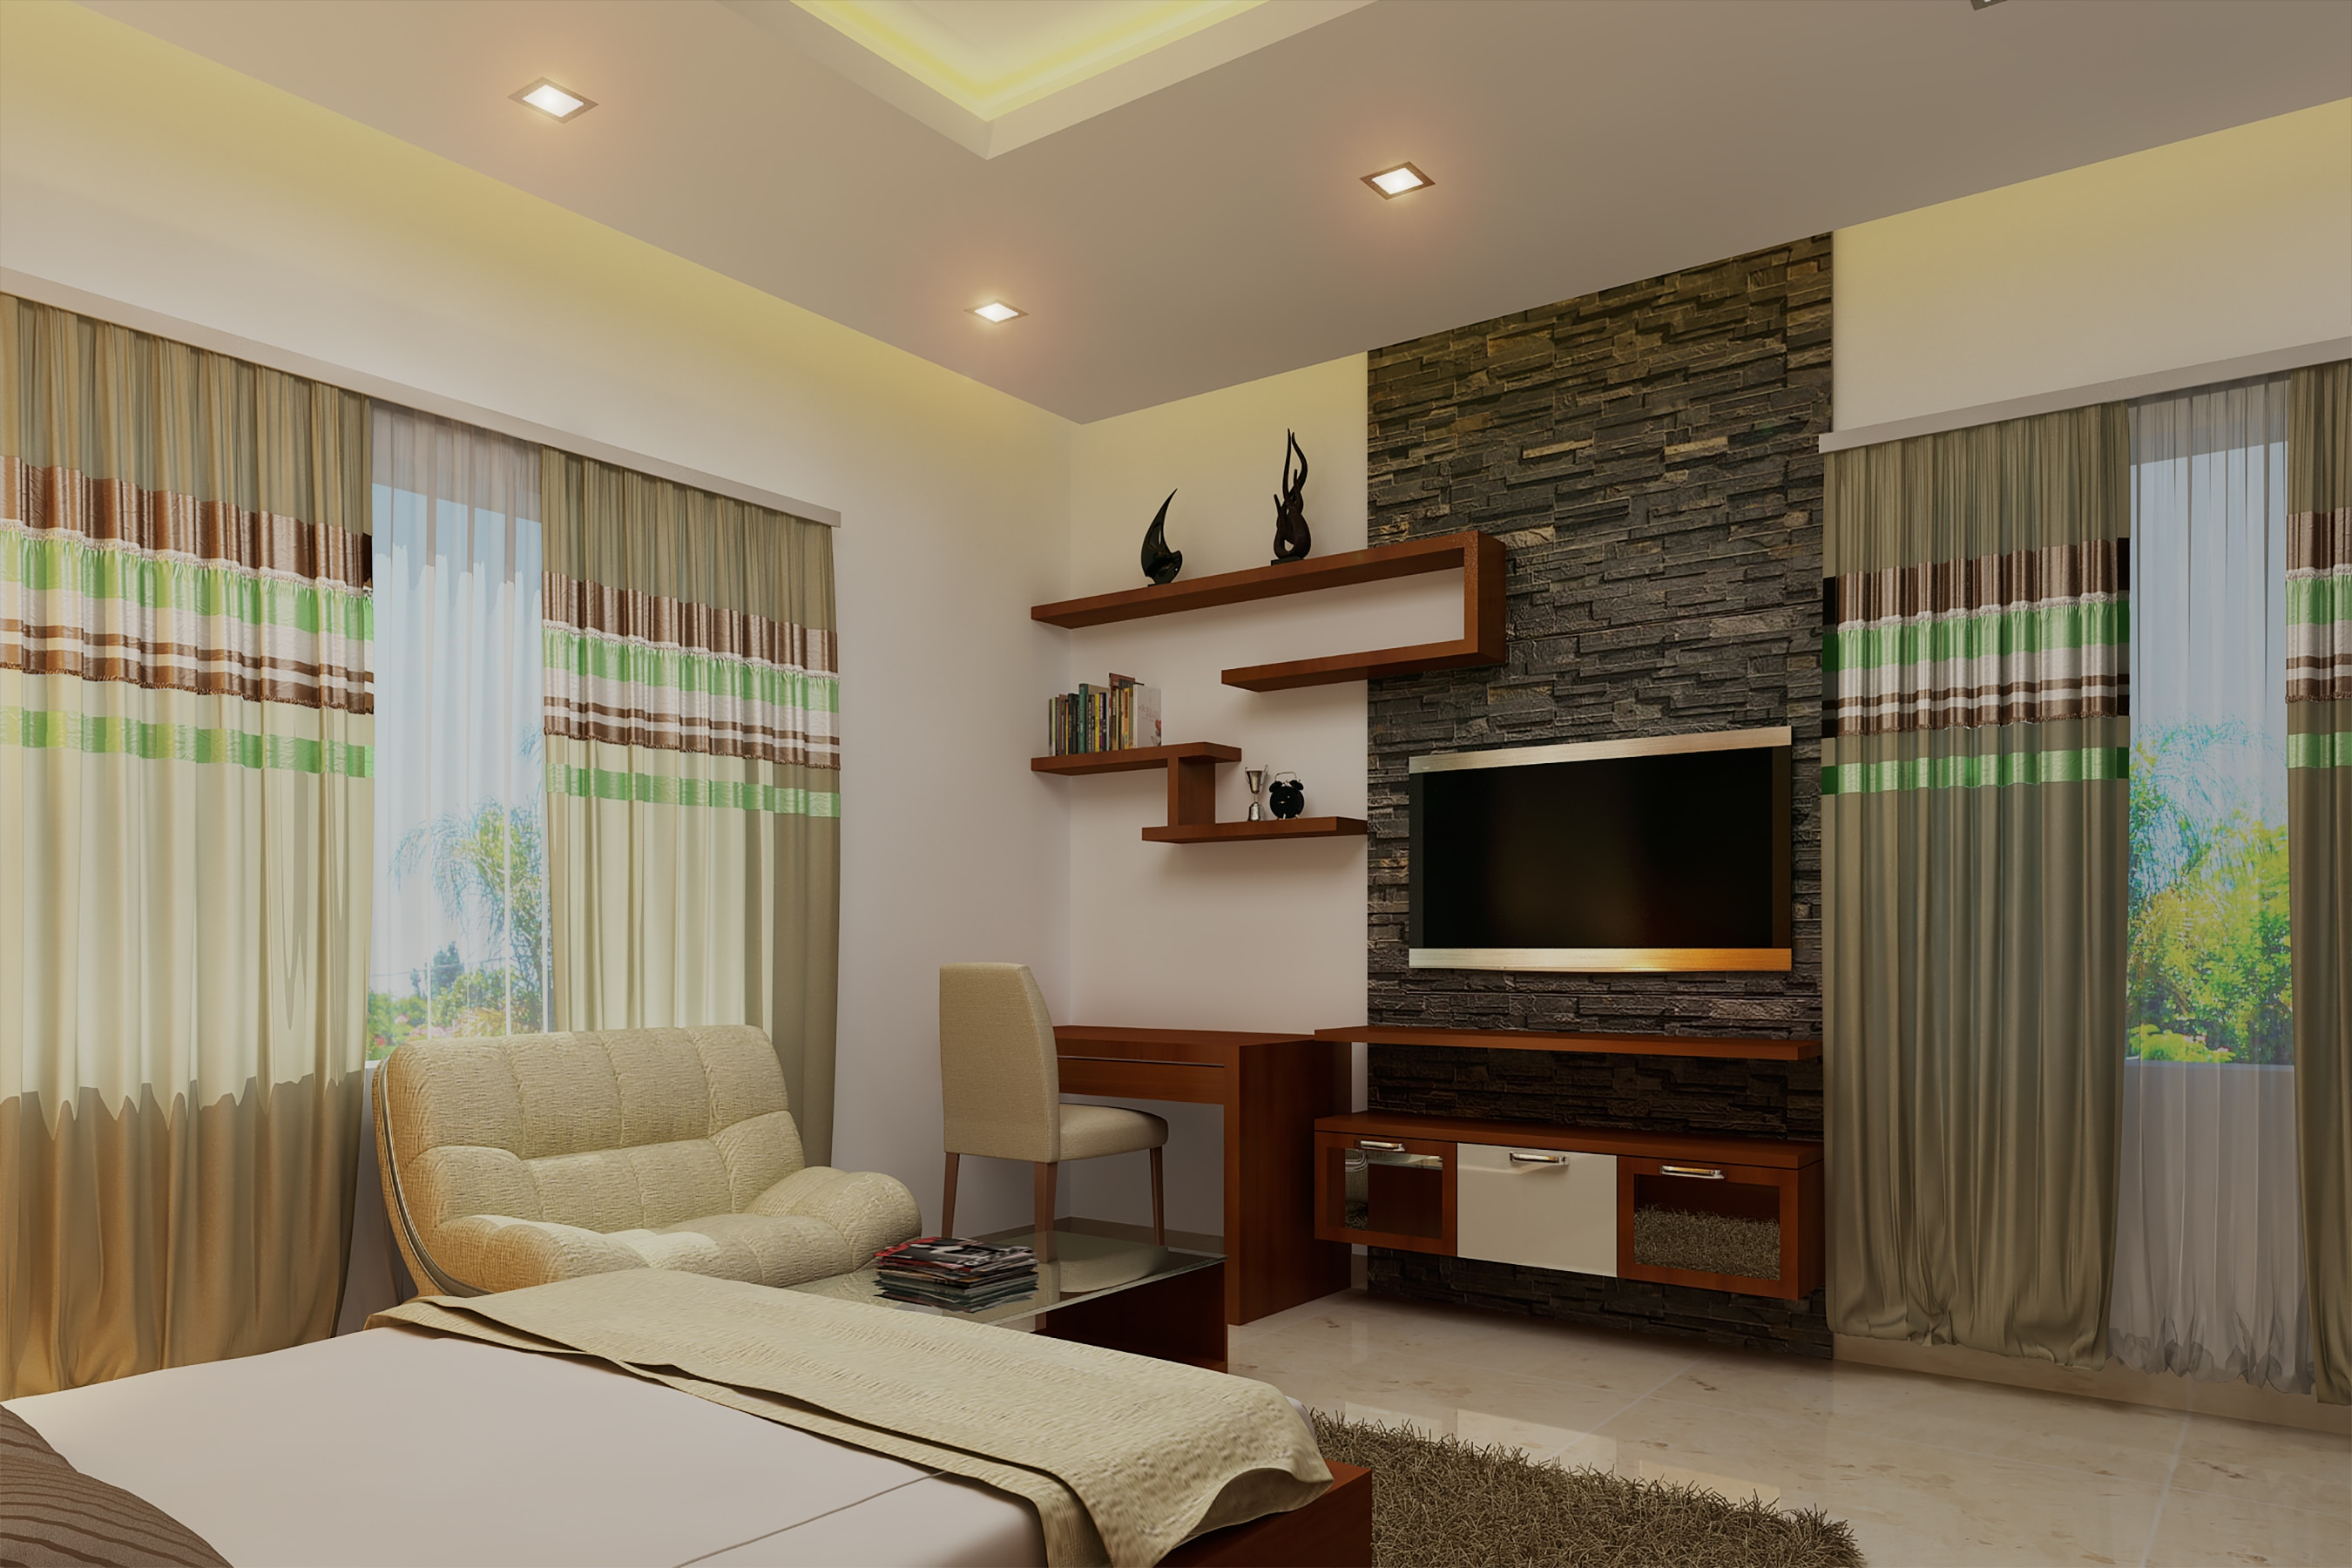 Lcd unit interior designing firm in kochi the latest contemporary trending style modern interior be